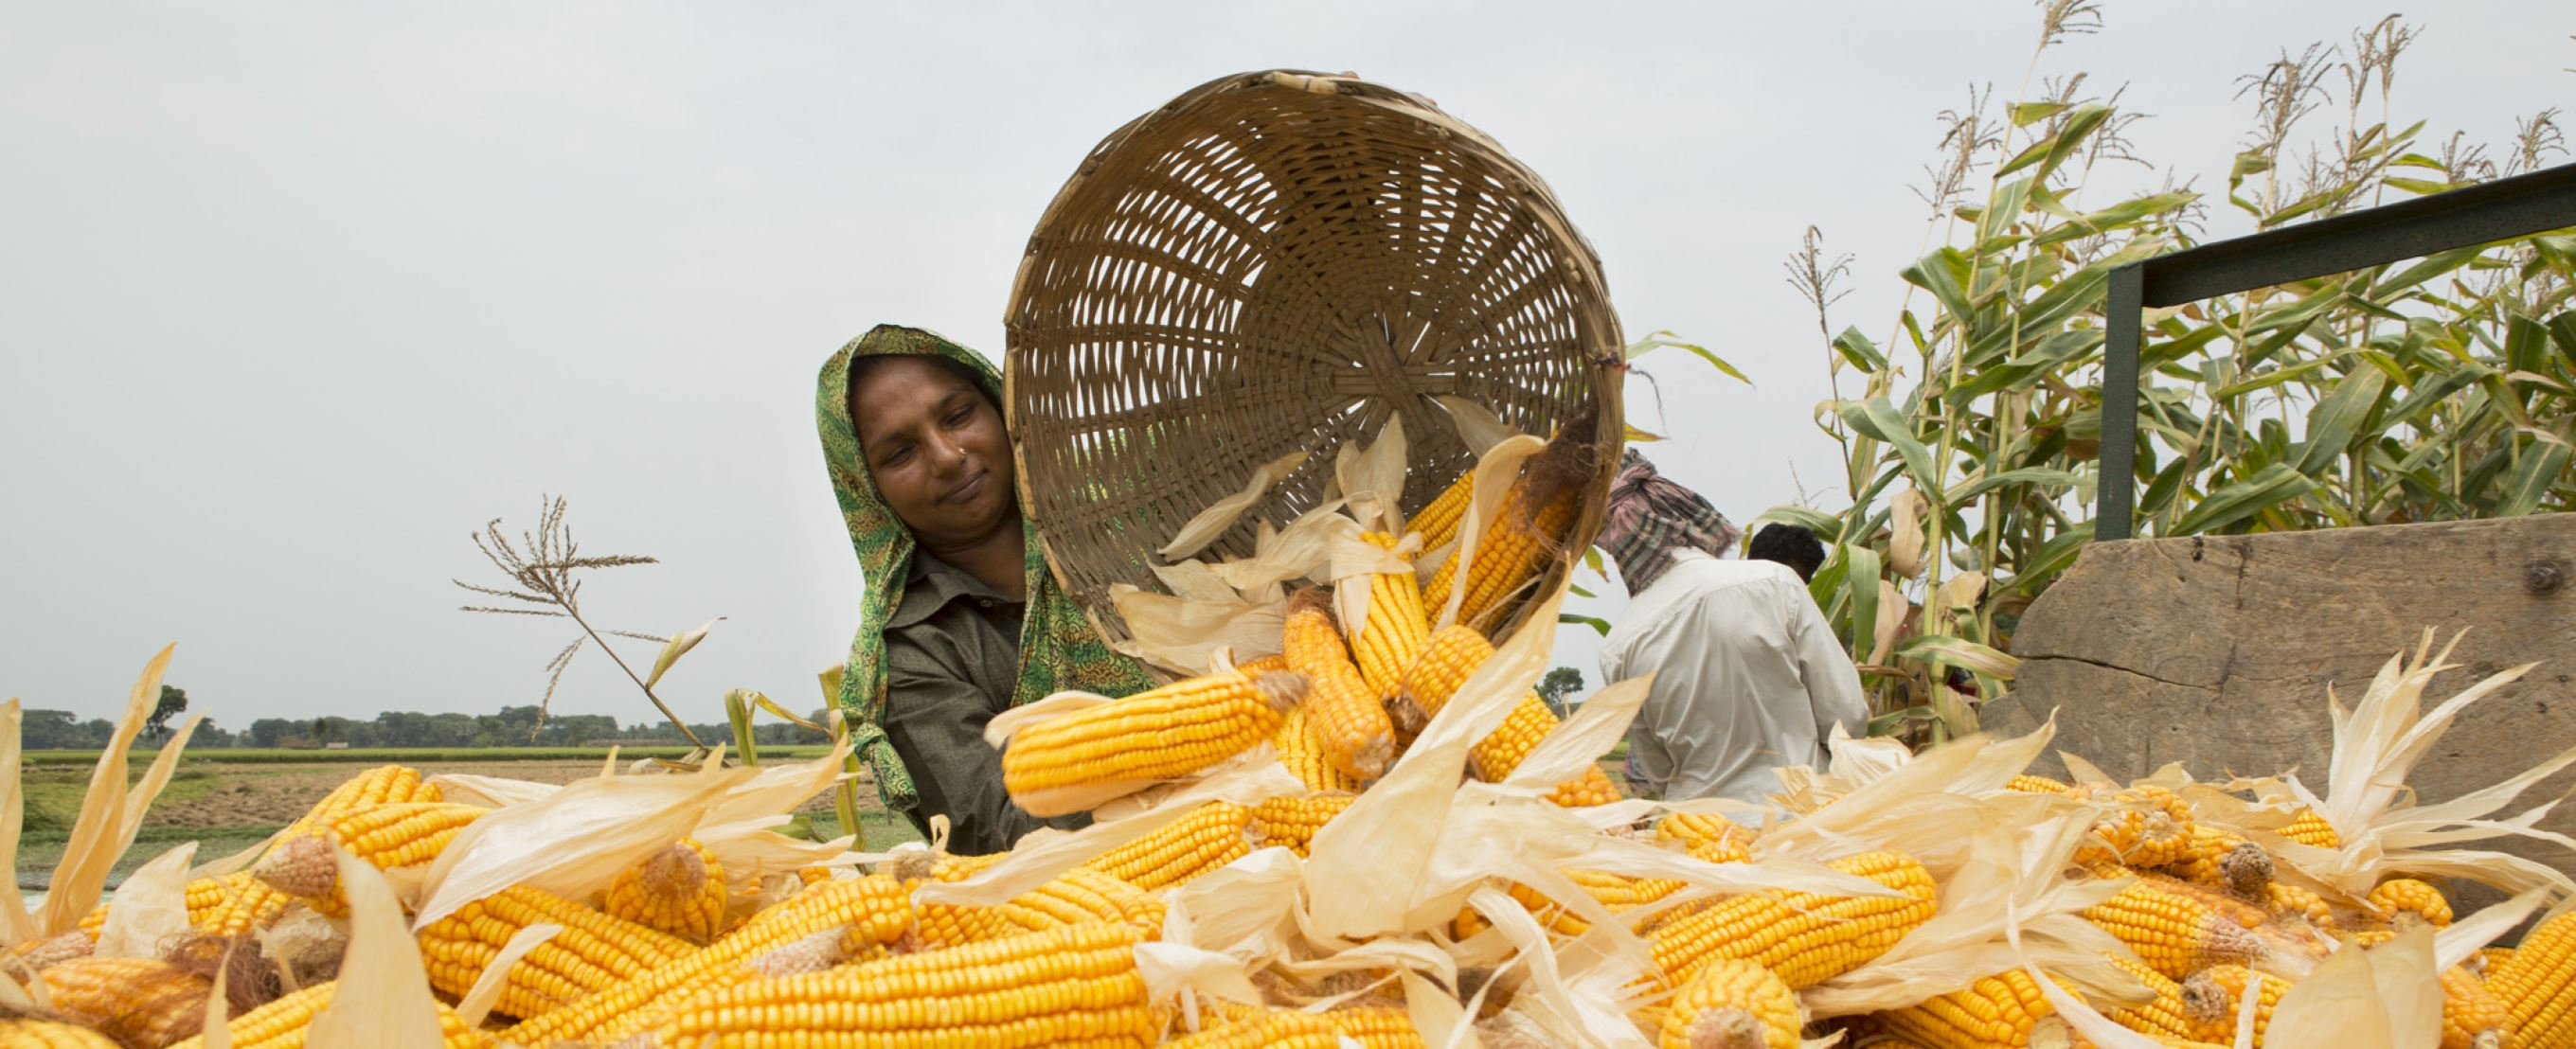 Lady pouring out corn on the cobs